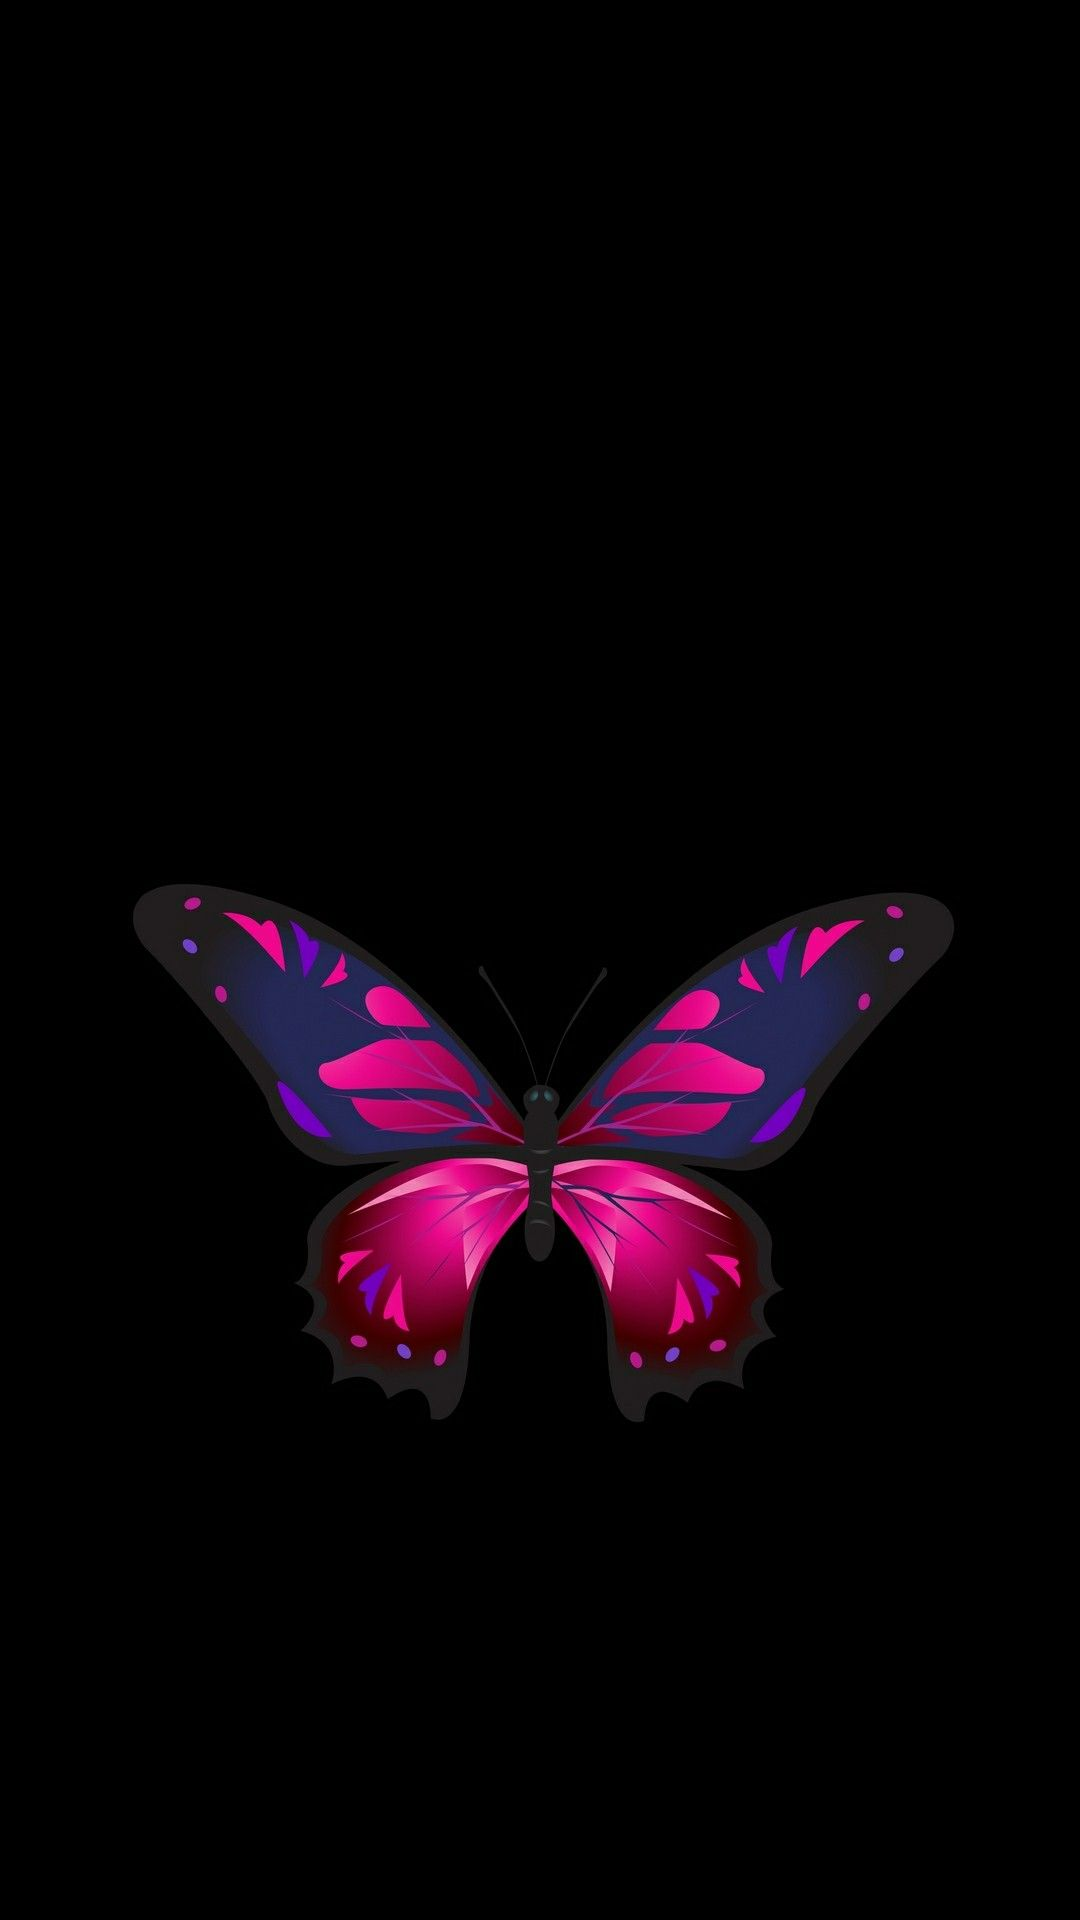 Butterfly With Images Dark Background Wallpaper Butterfly